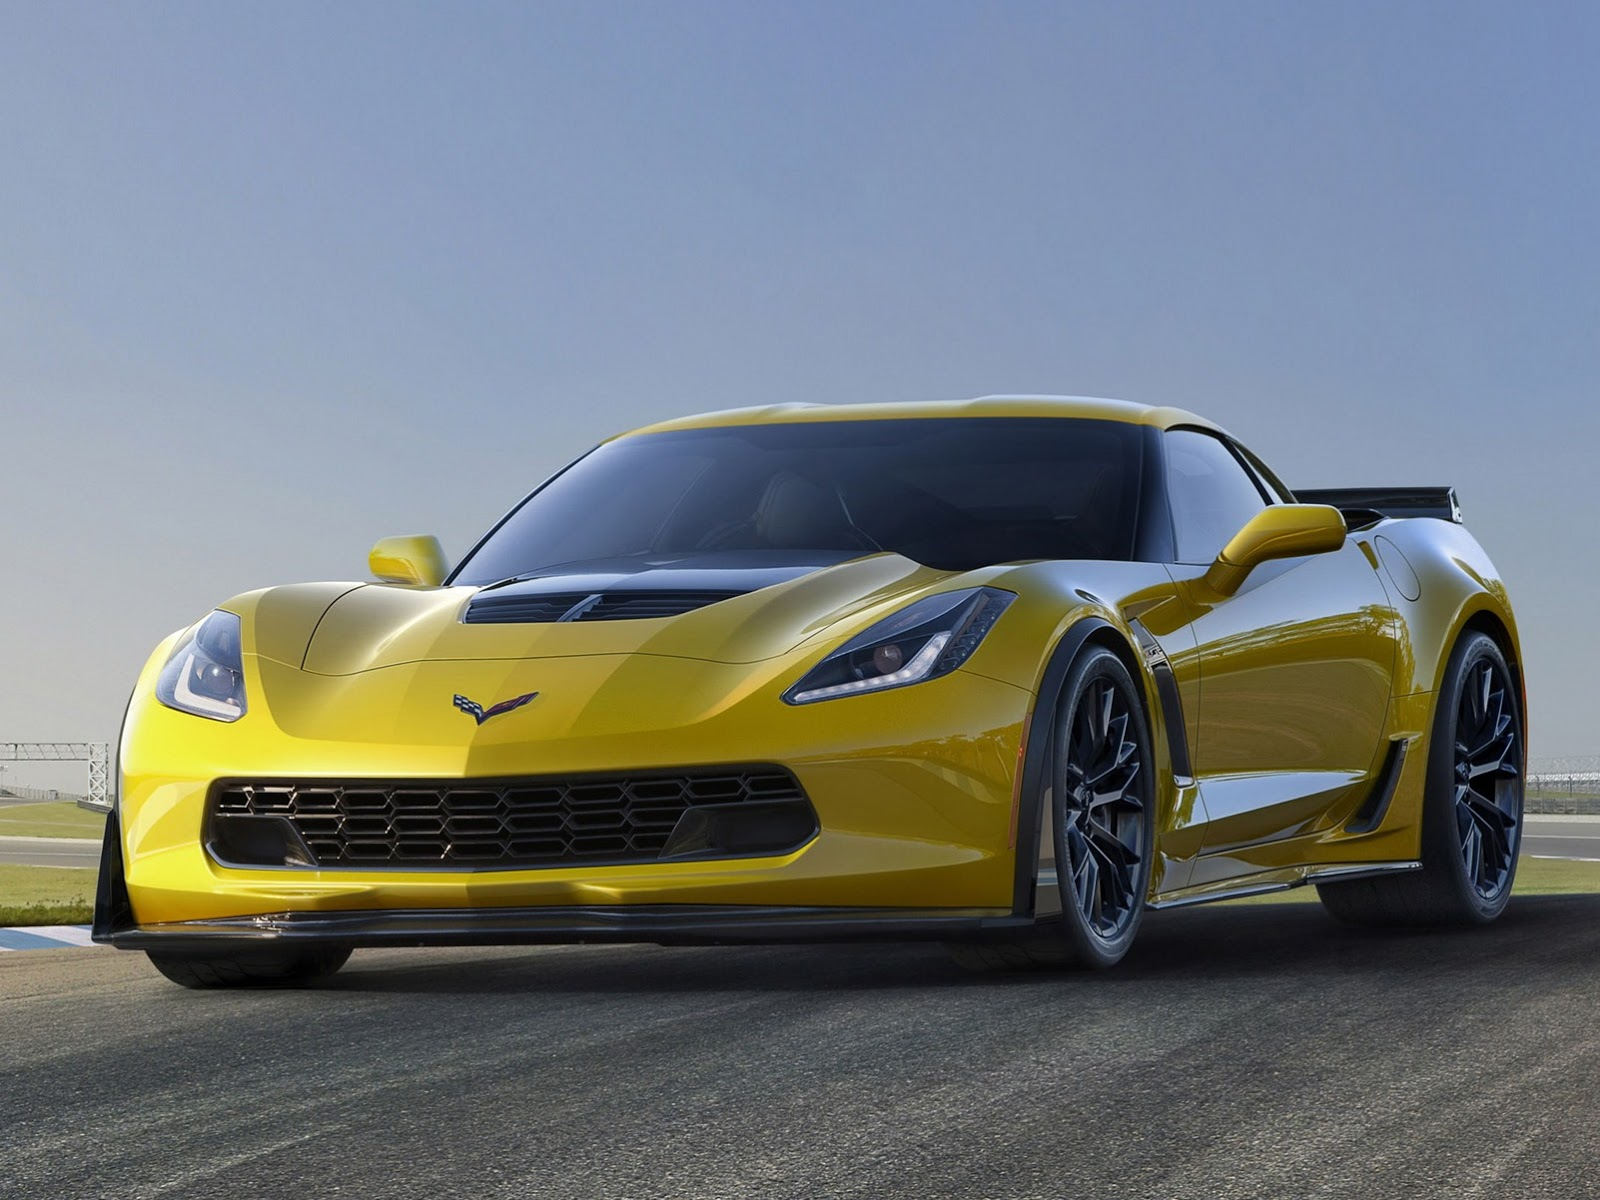 2015 Chevrolet Corvette Z06 Sports Cars Diseno Art